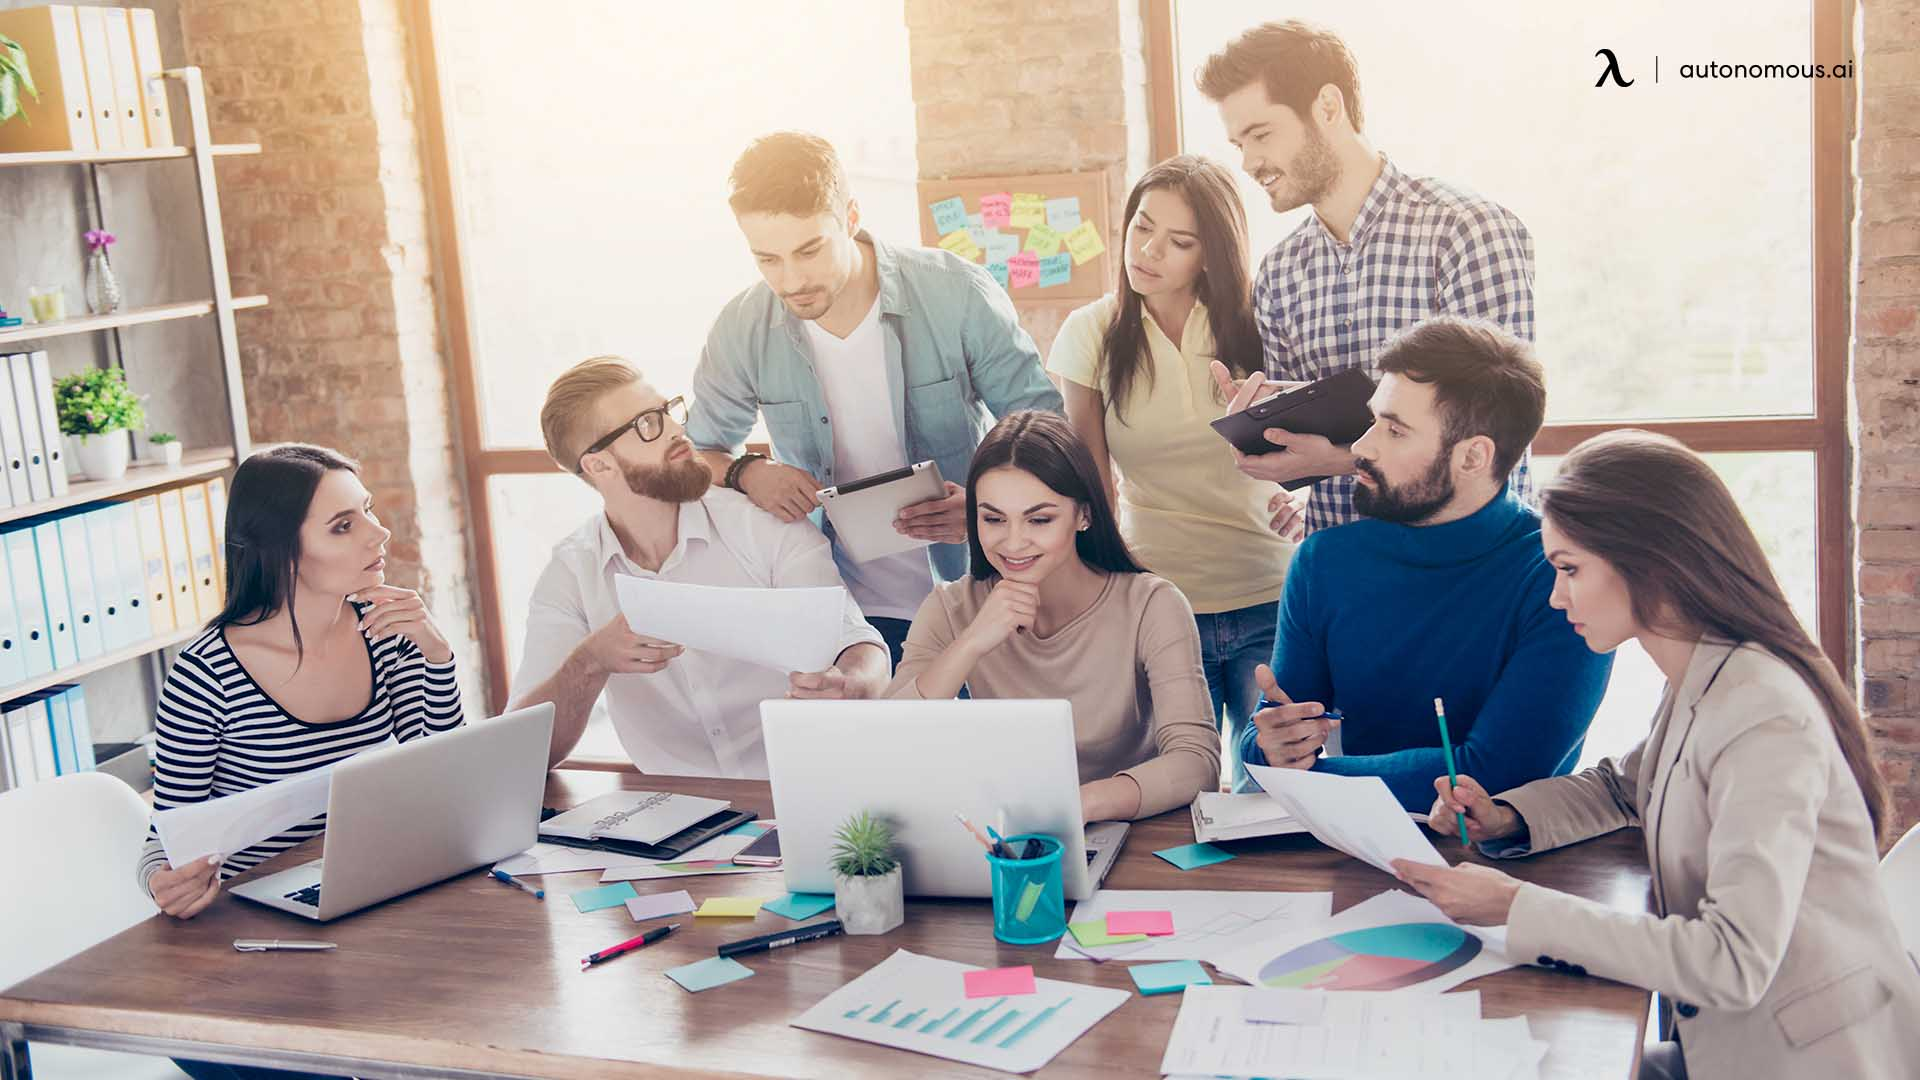 Hot Desking Can Be Distracting for Some People